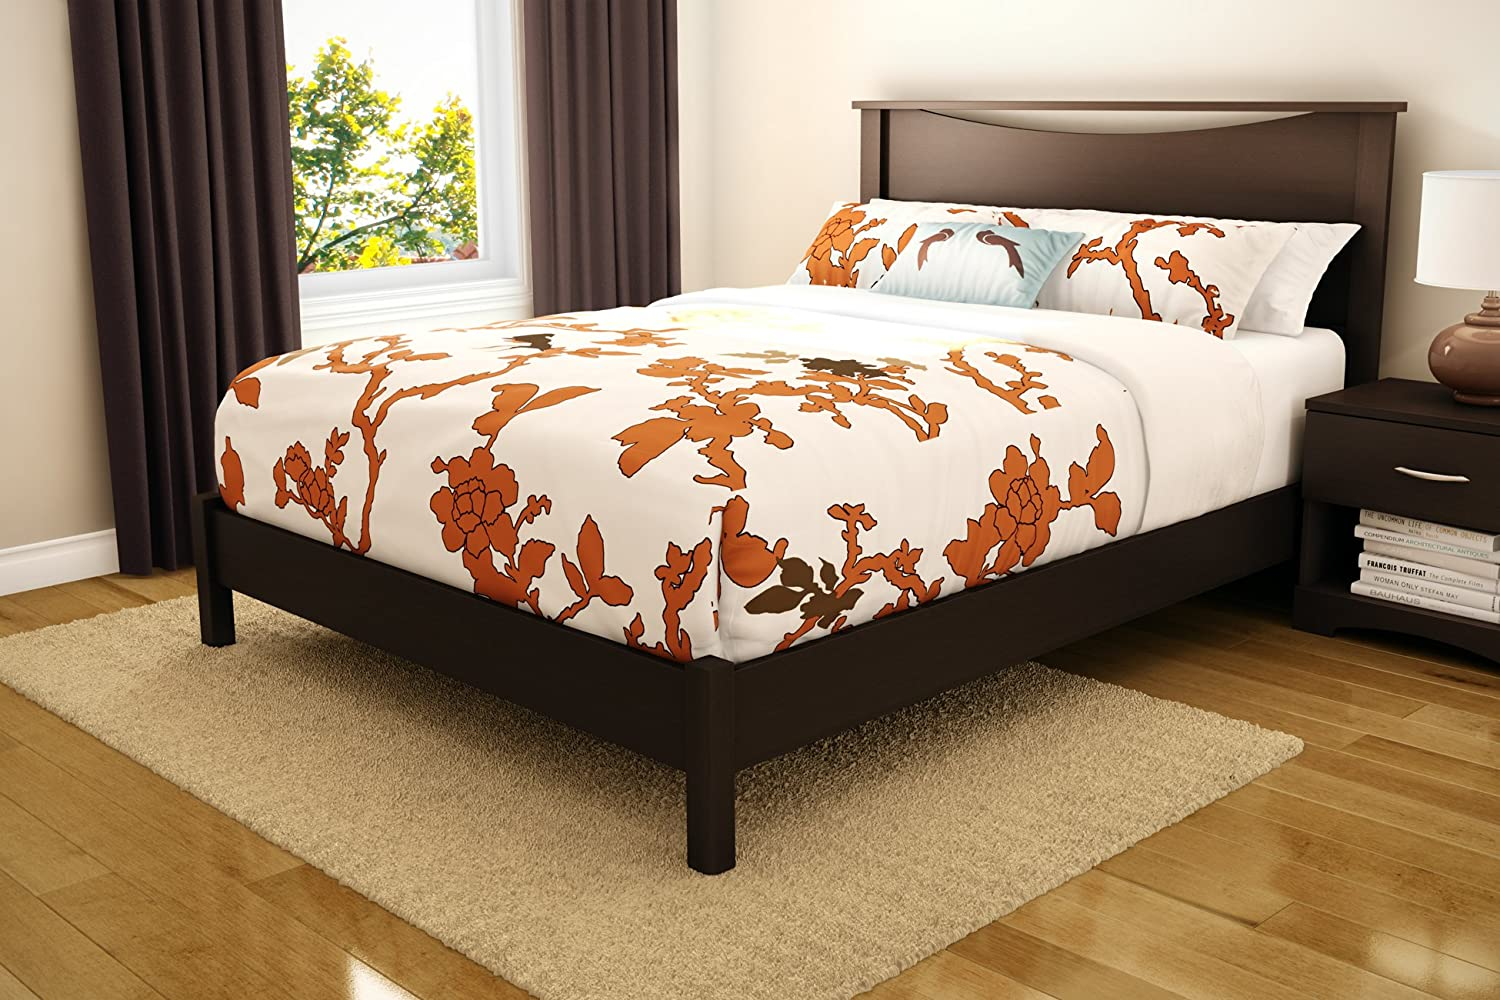 Pictures of platform beds - Amazon Com South Shore Sandbox Collection 60 Inch Queen Platform Bed Chocolate Kitchen Dining